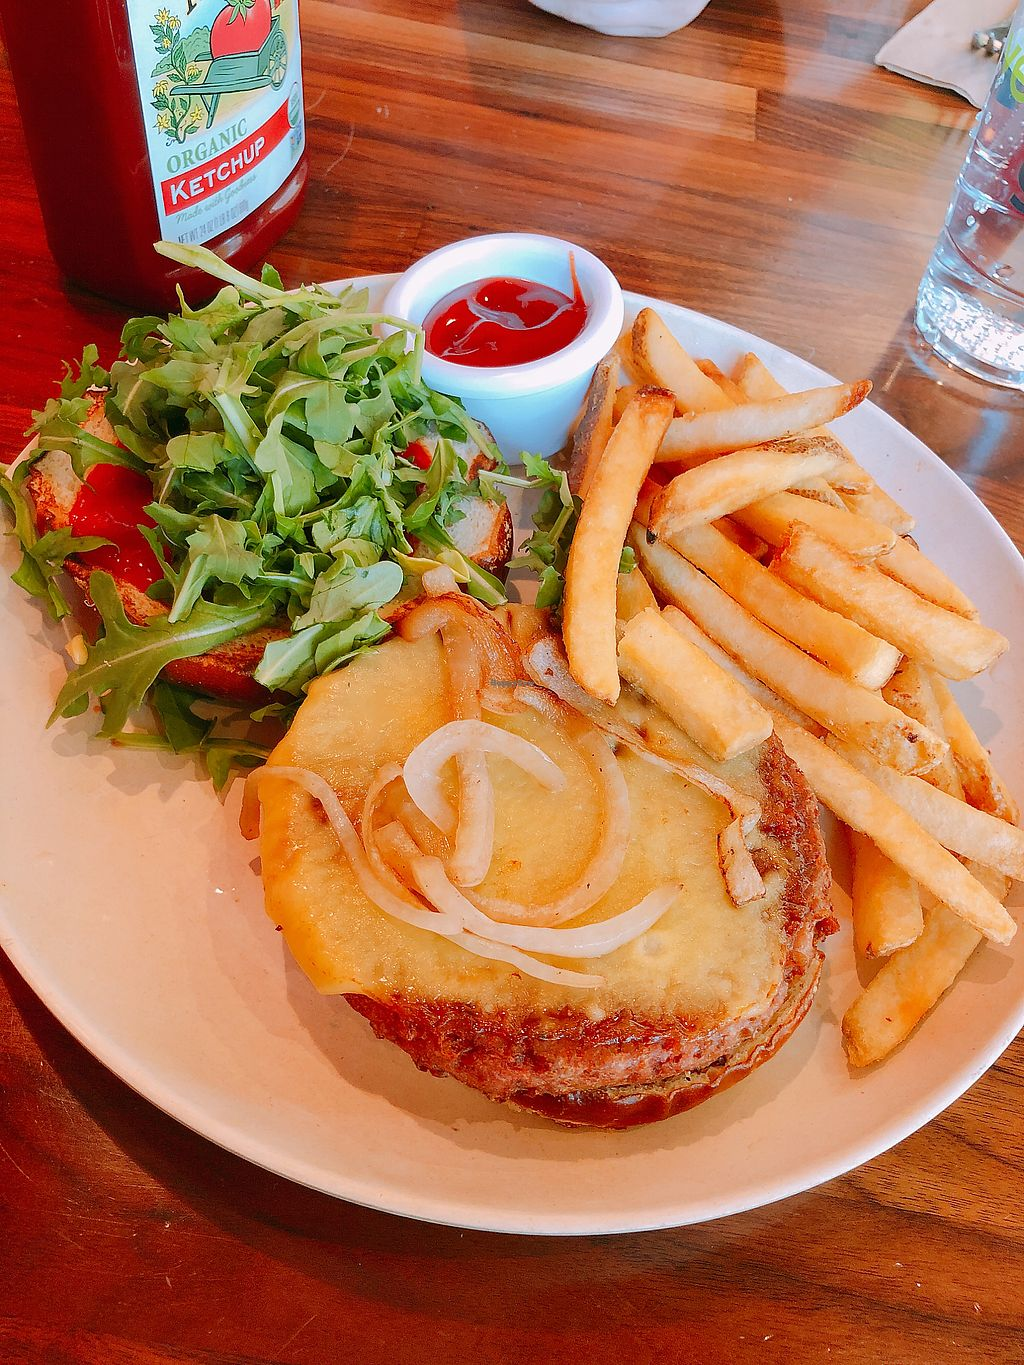 "Photo of Veggie Grill  by <a href=""/members/profile/janitajasmin"">janitajasmin</a> <br/>Lucky star burger <br/> May 9, 2018  - <a href='/contact/abuse/image/35243/397500'>Report</a>"